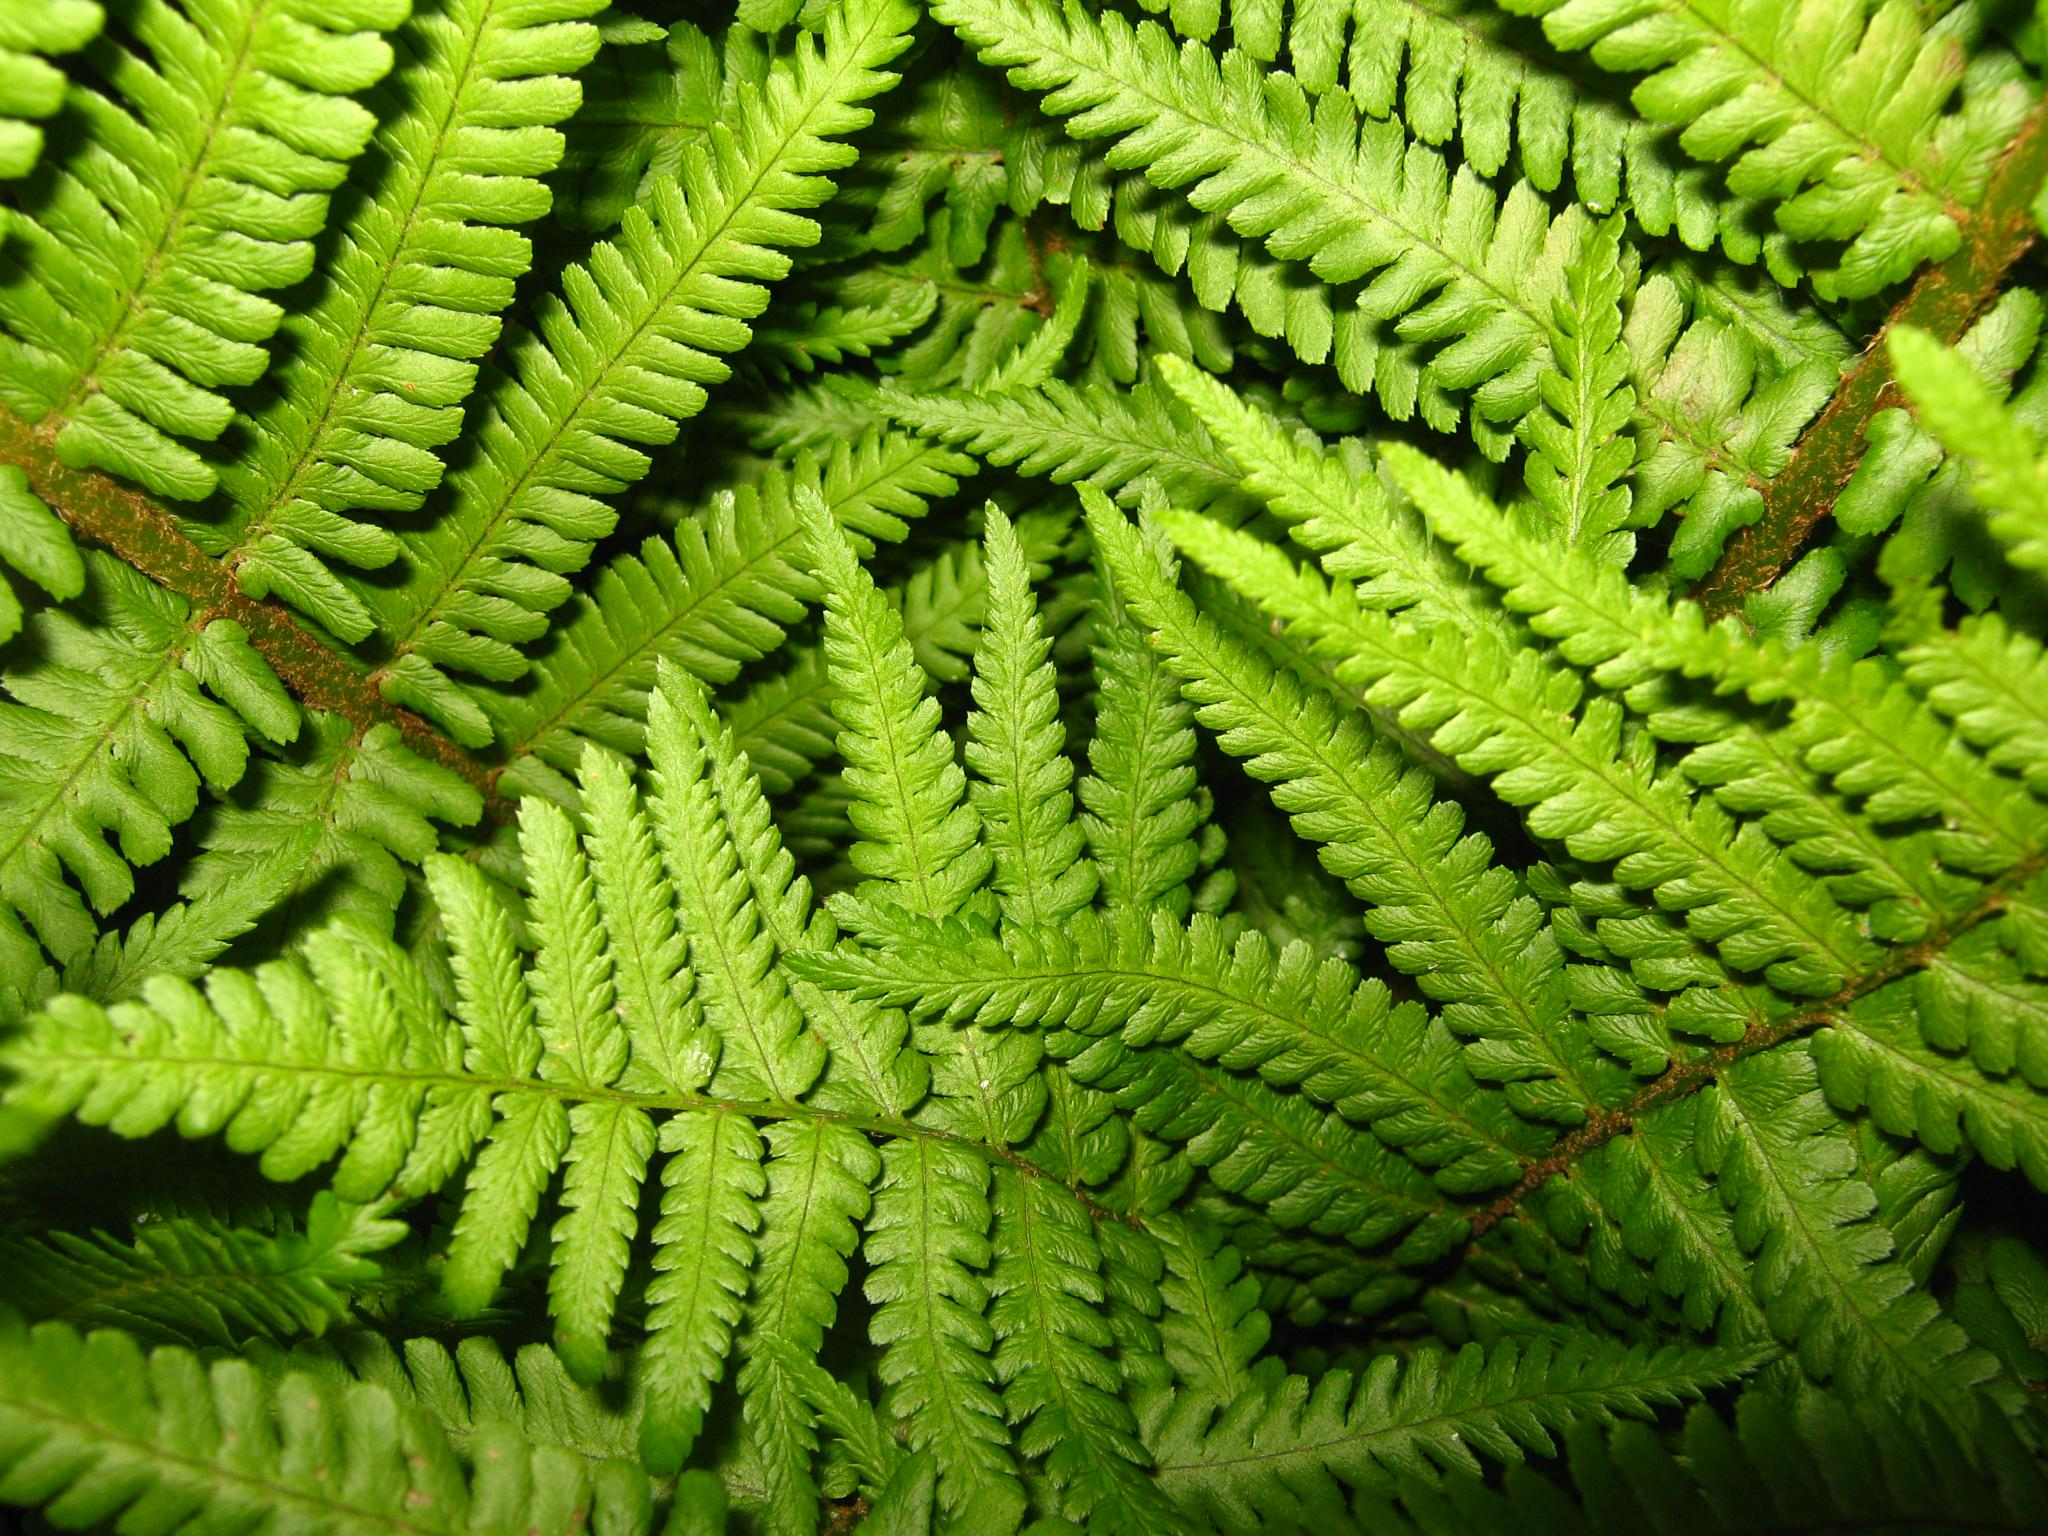 Fern by NatureBoy